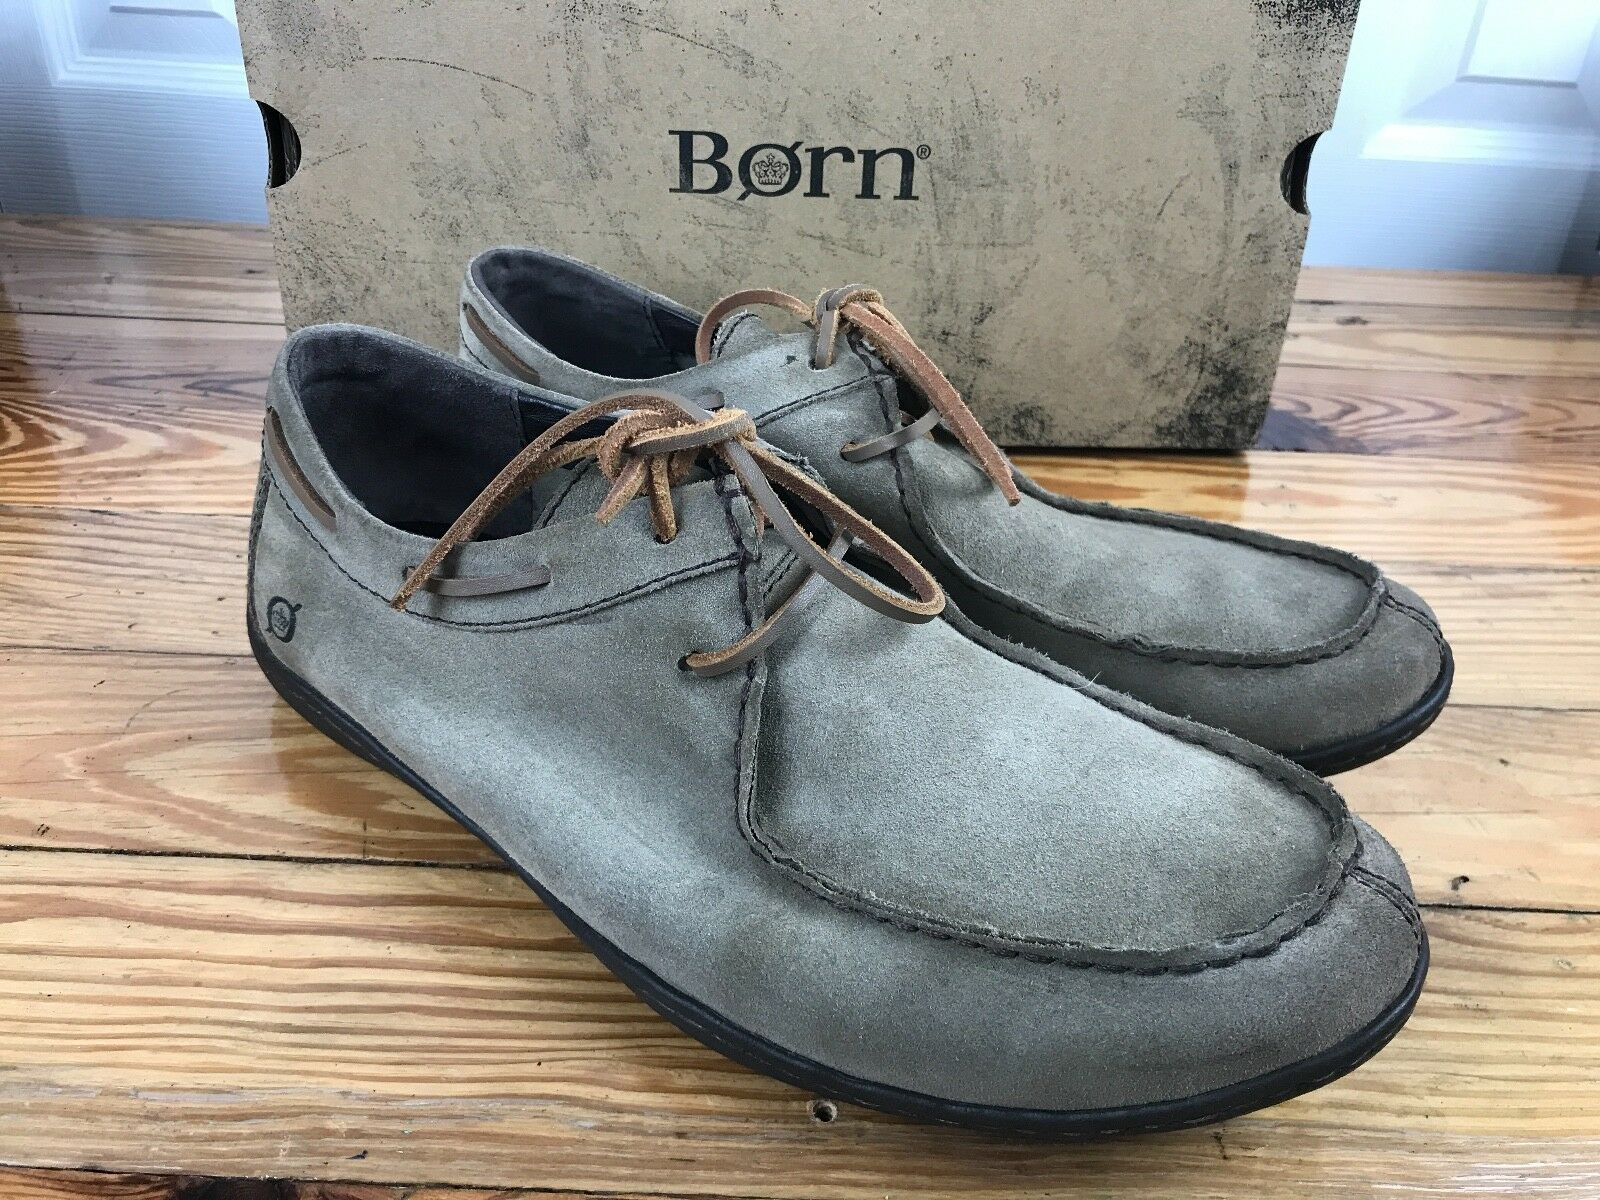 Born Suede Casual shoes Size 11 M